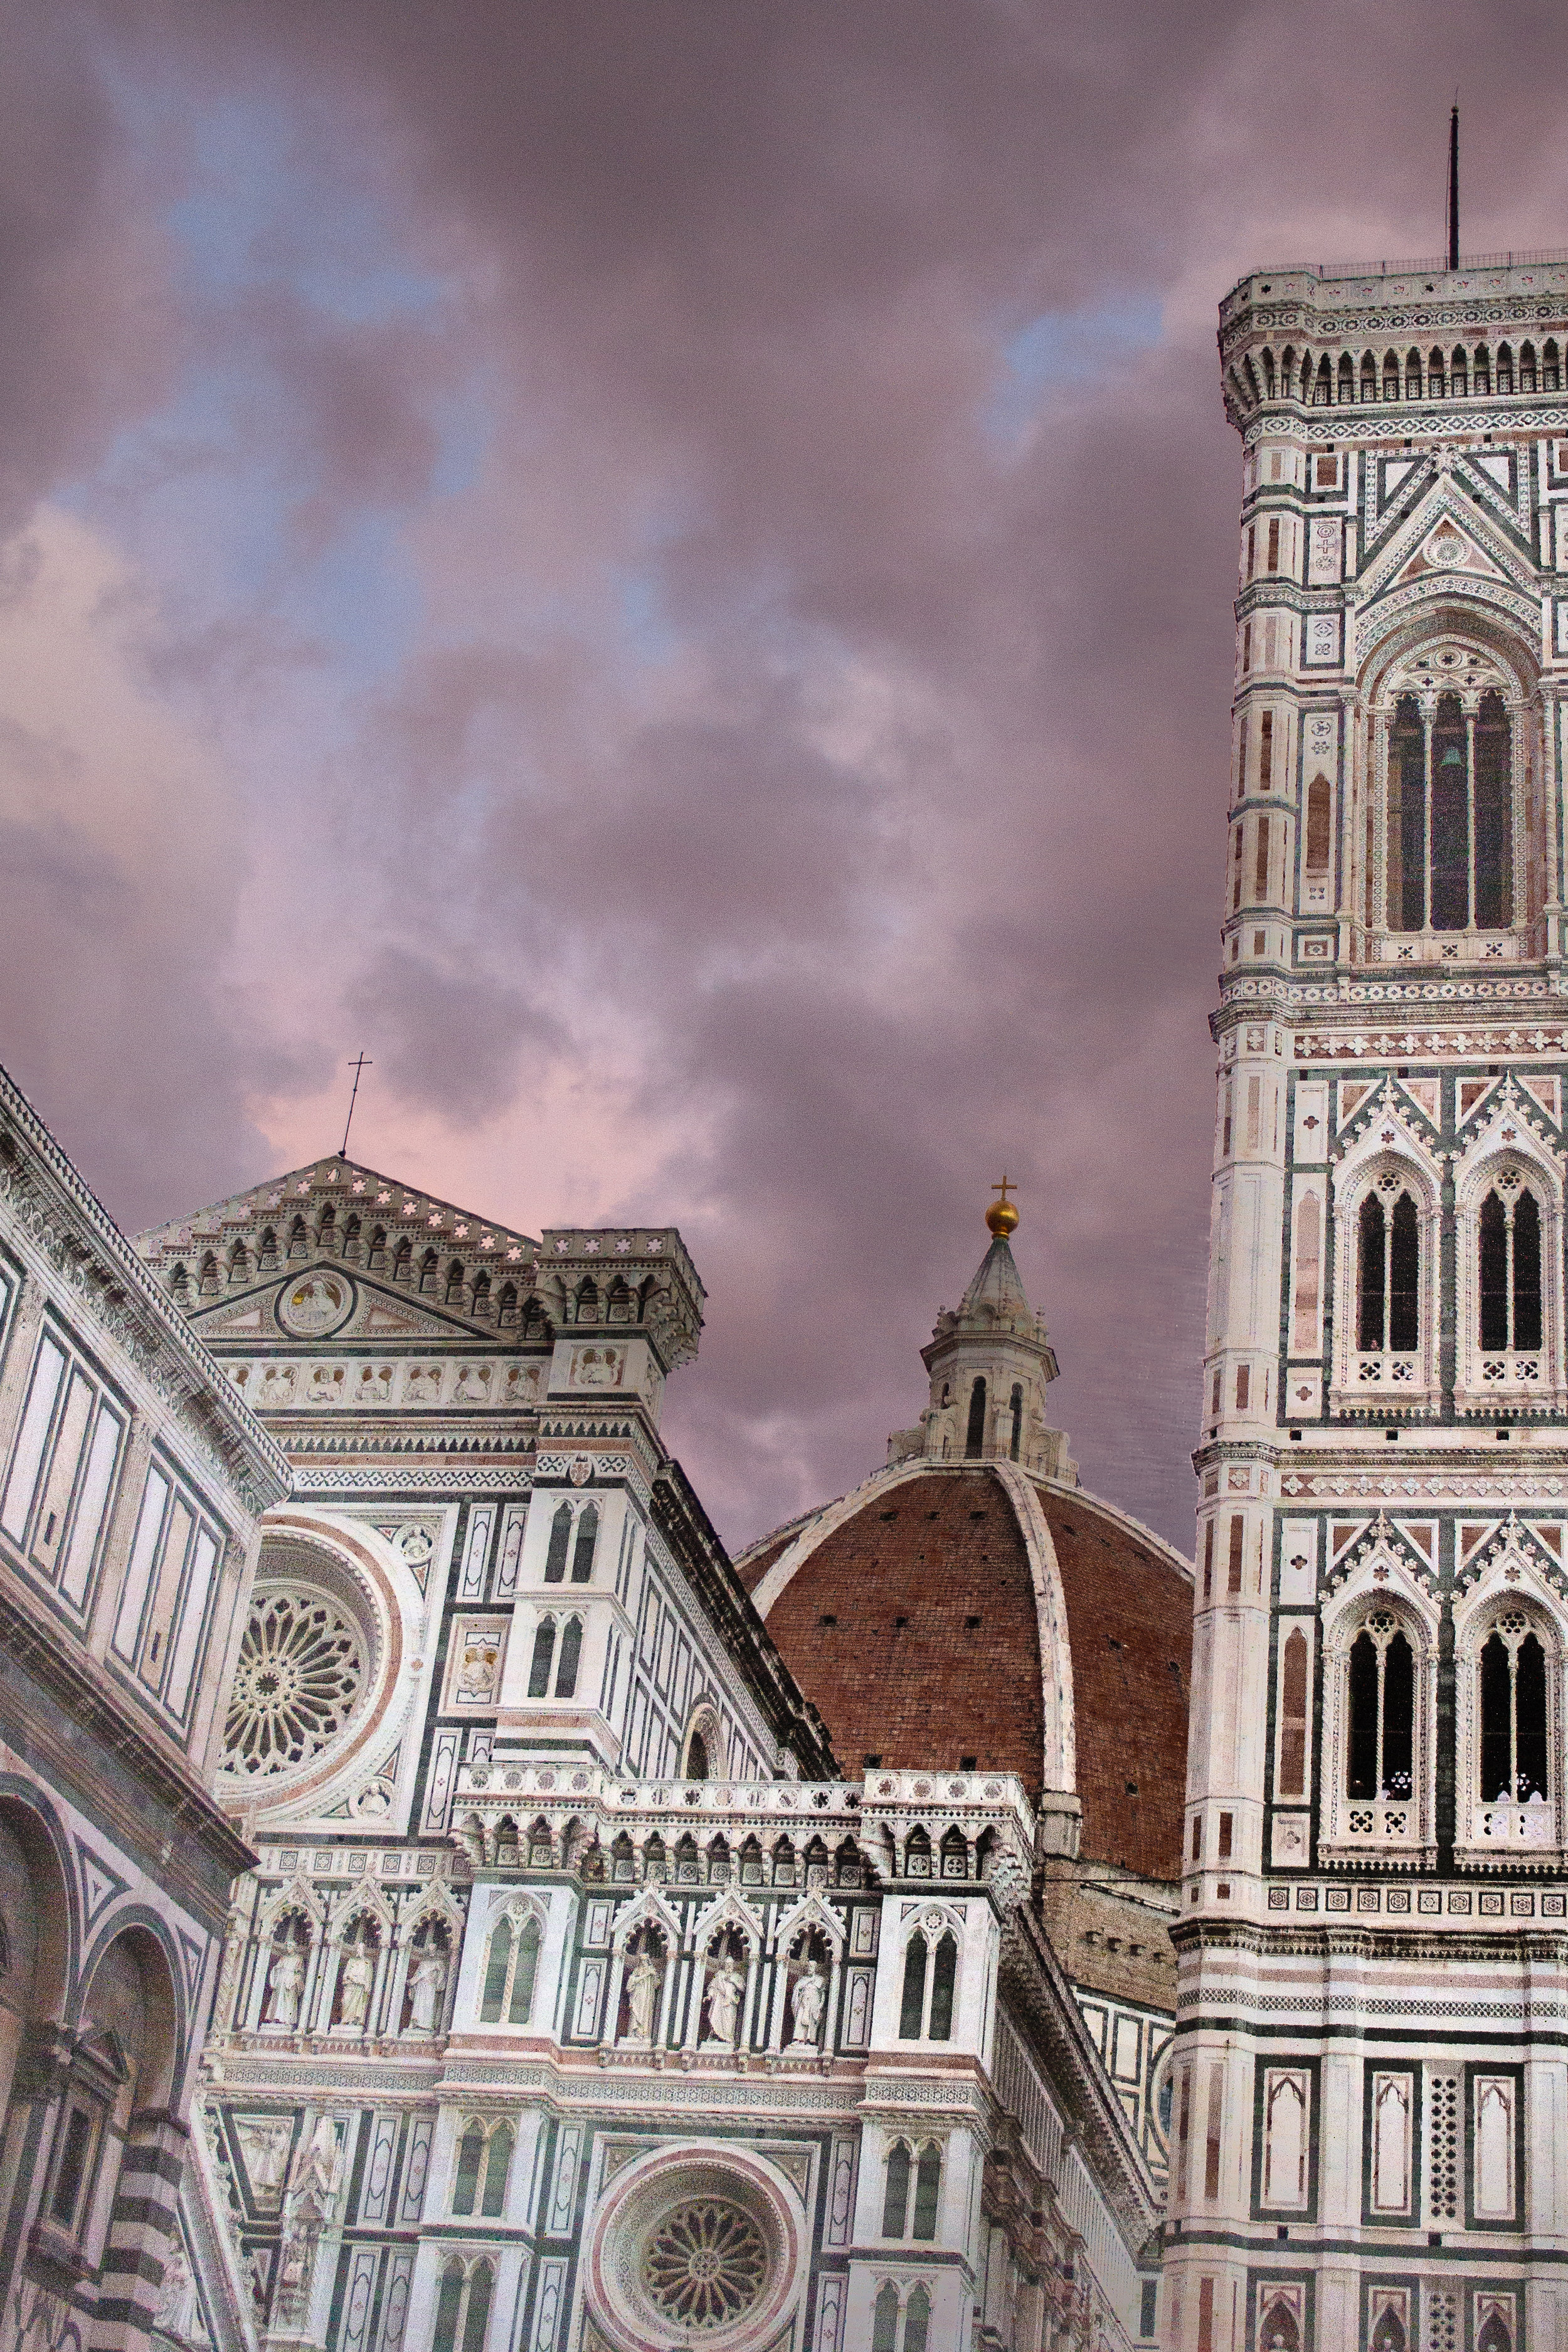 The Duomo after a storm